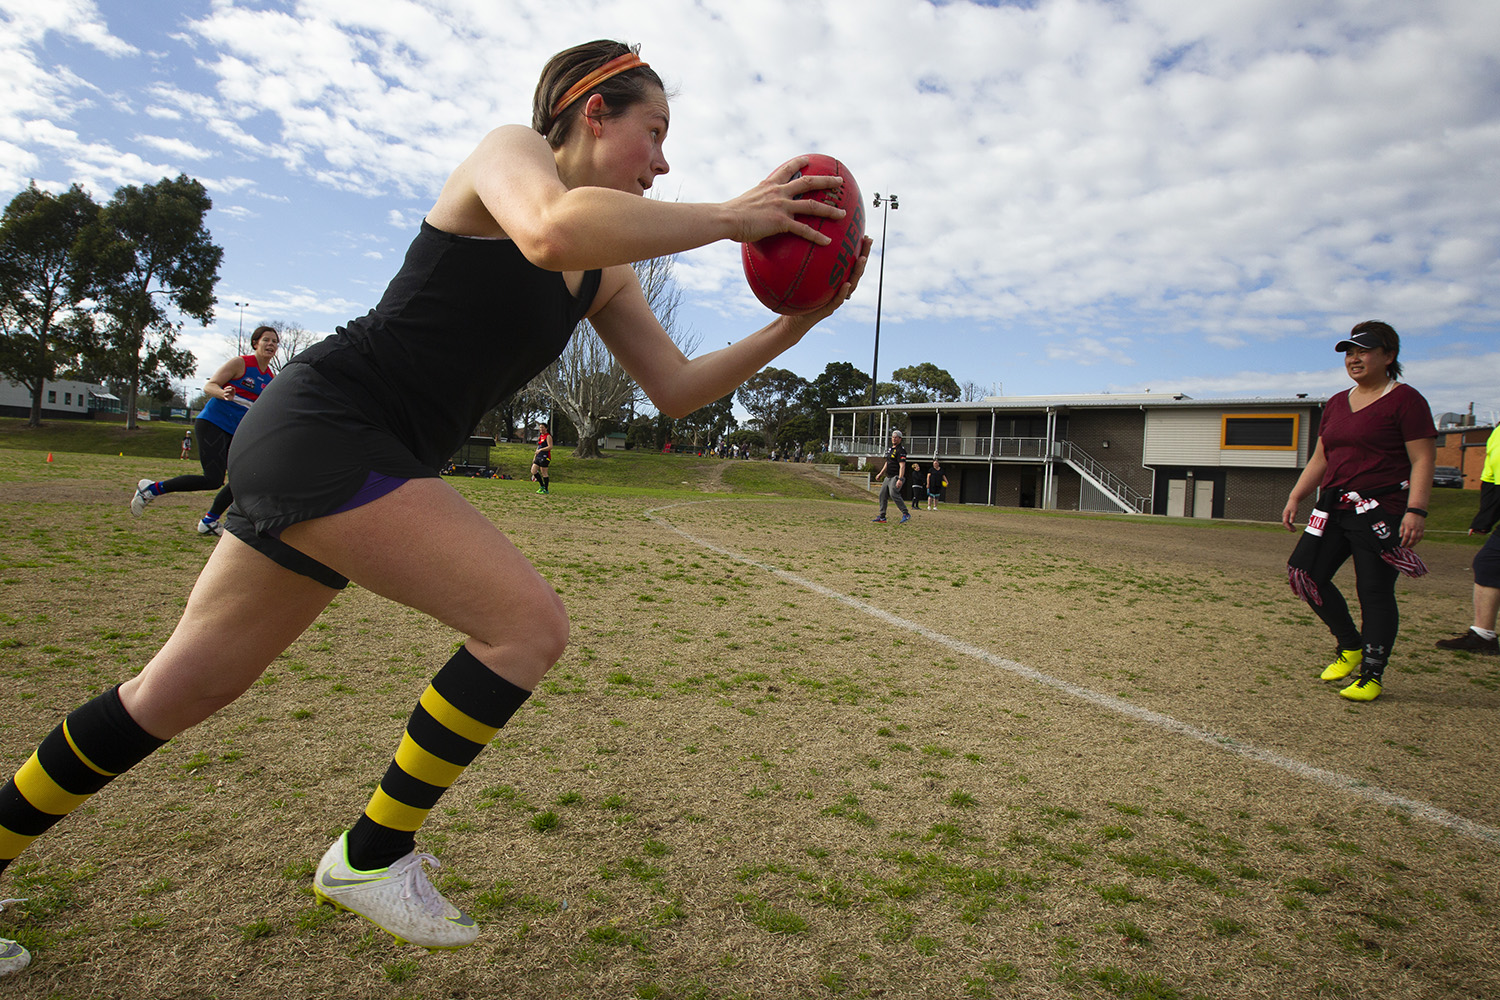 A background in rugby provided some insight for Preston into the physical team game of Australian Rules football. But what captured her enthusiasm most was the 360 degree action, and the strategic nature of the contest - what she calls the 'mental aspect' of the game.